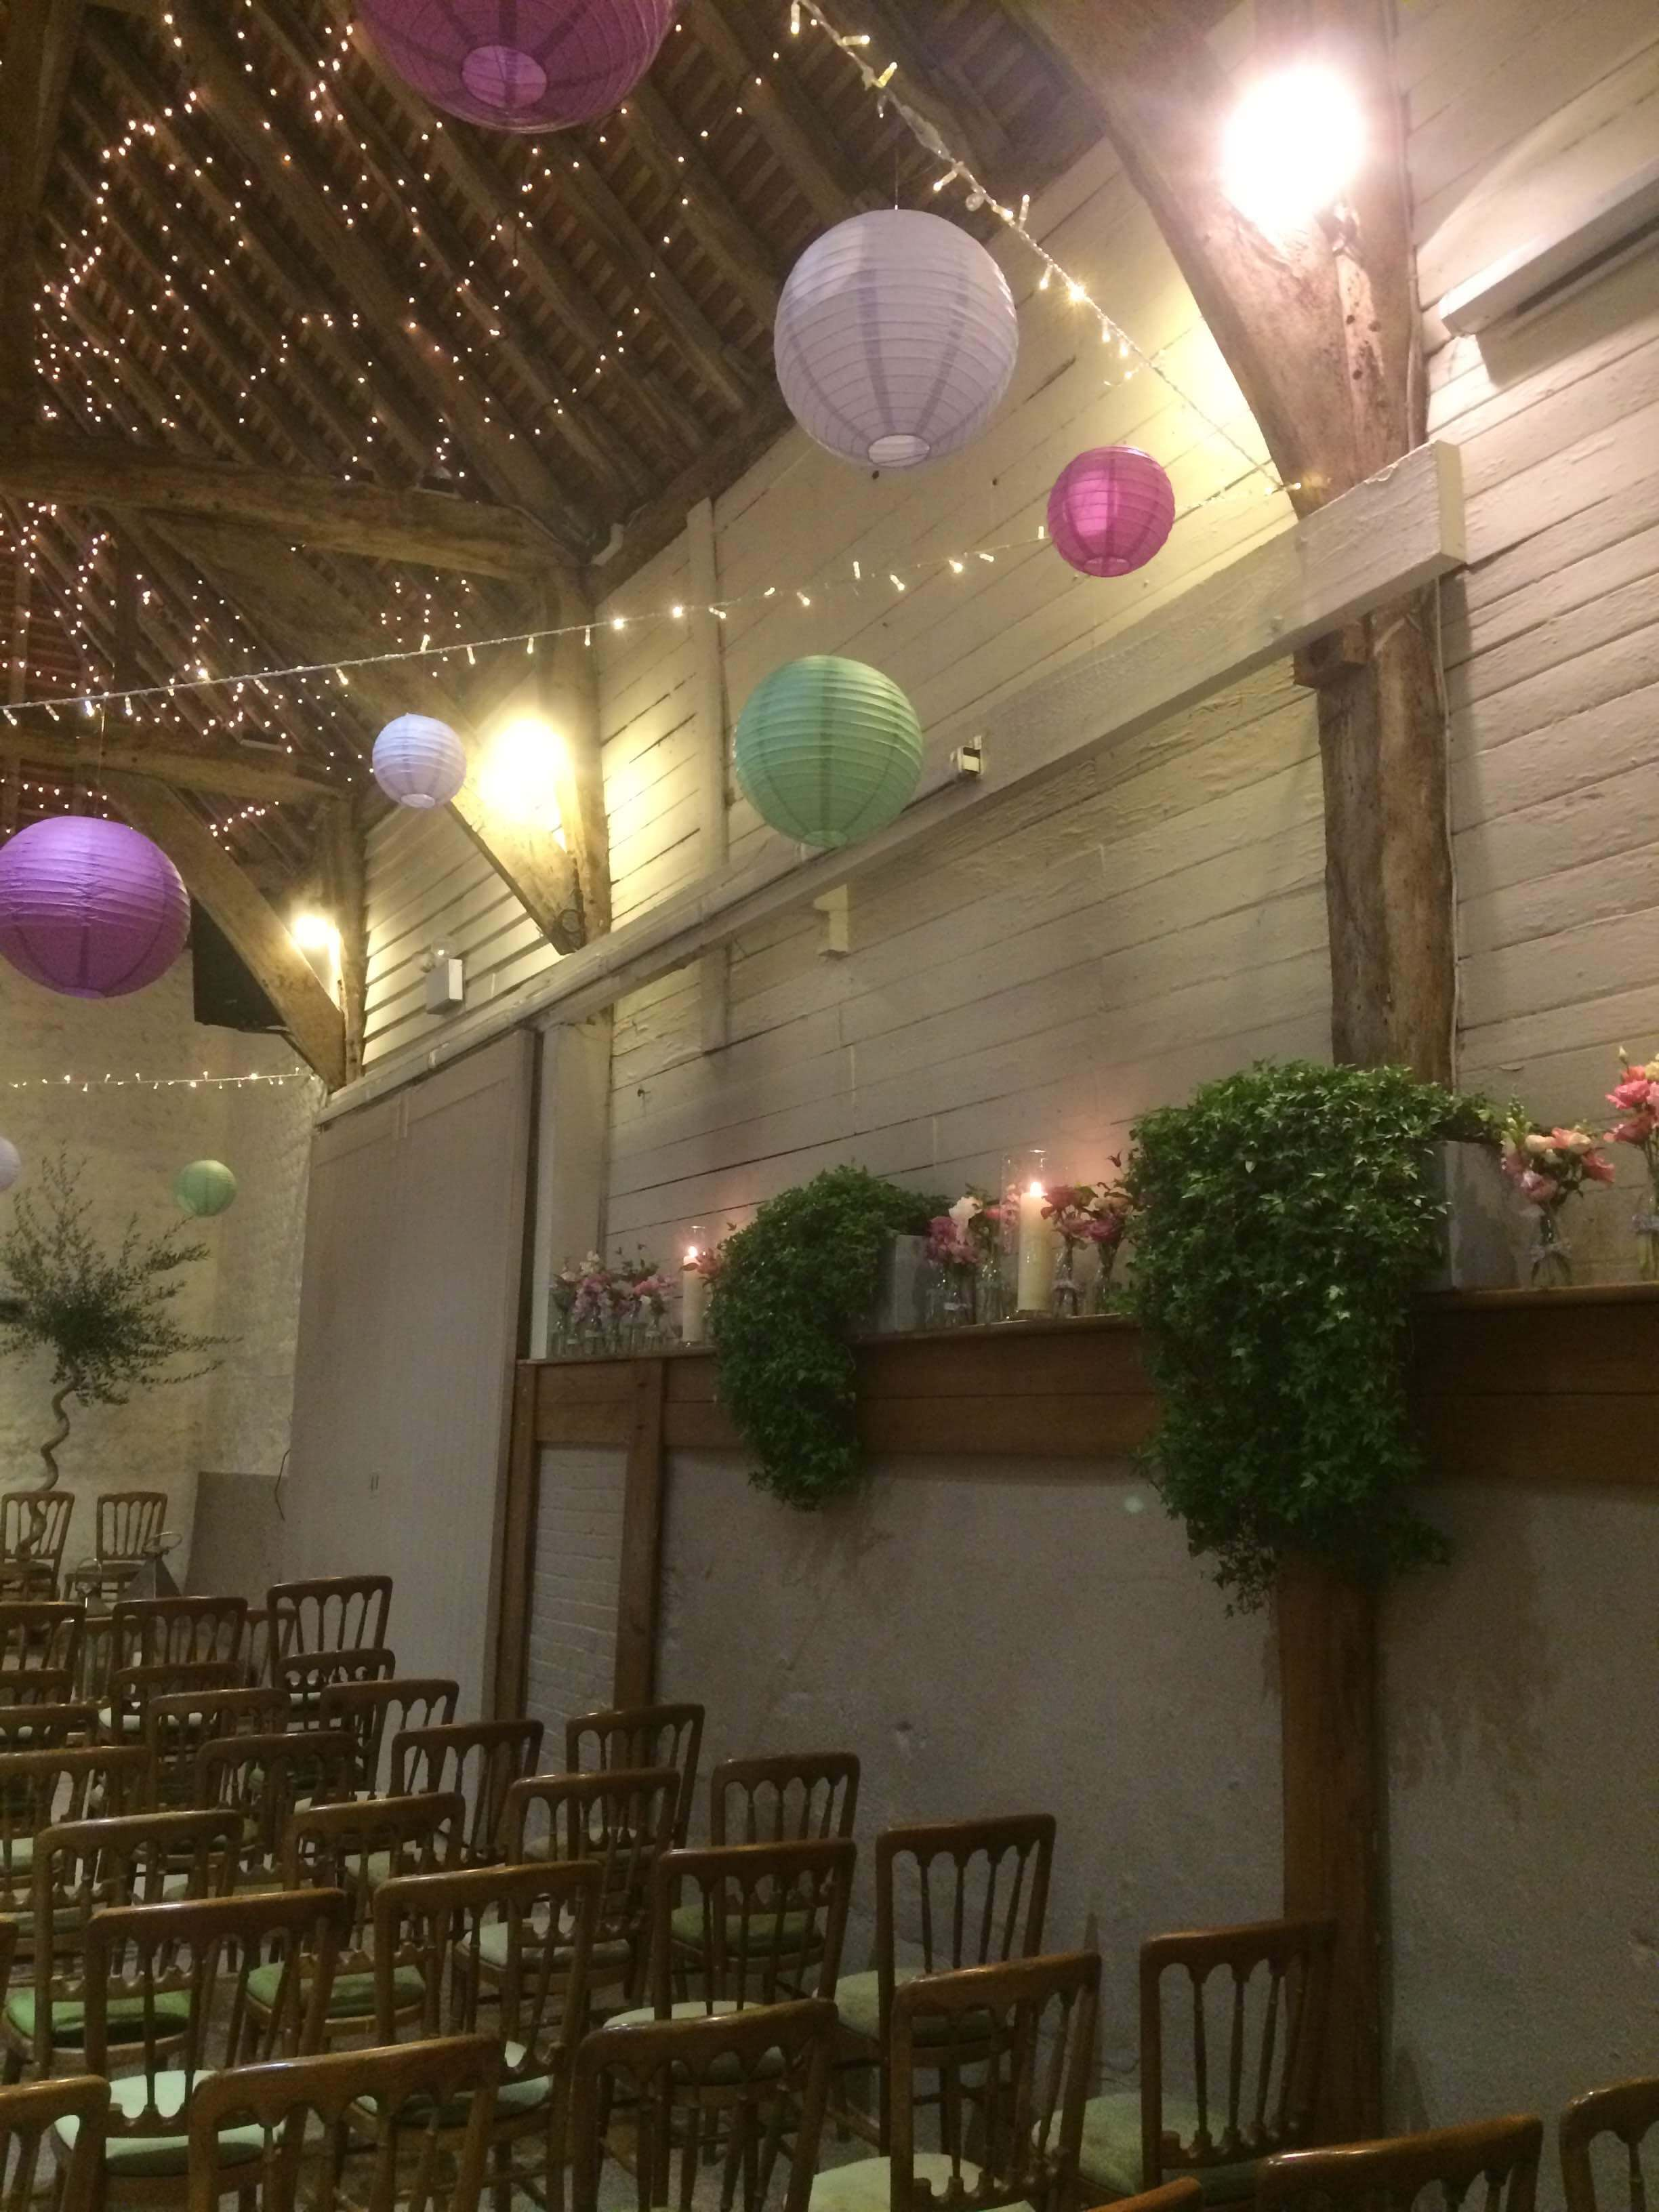 pangdean barn with hanging lanterns and flowers